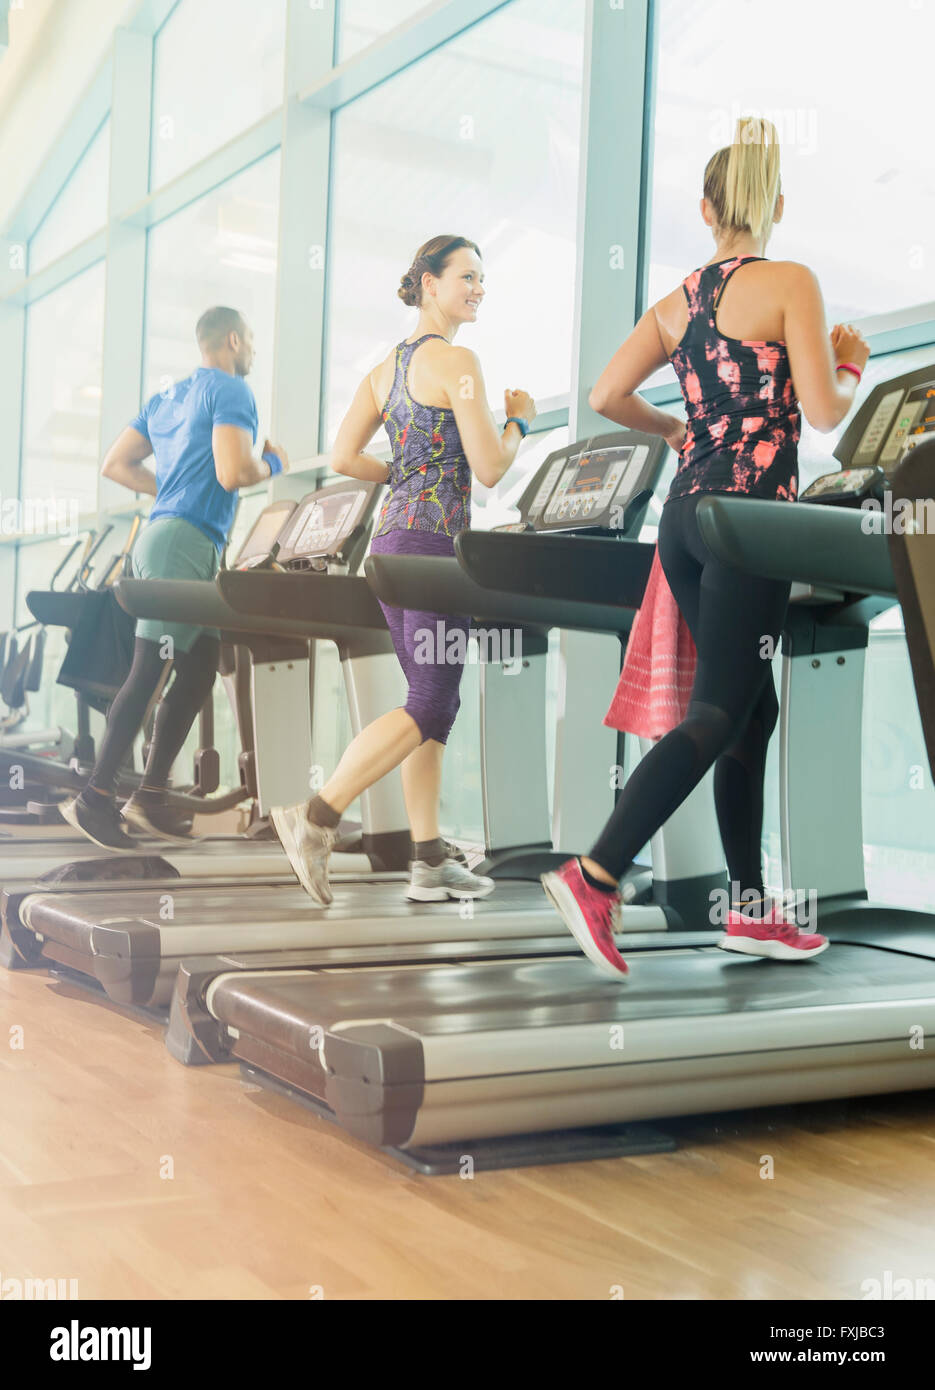 Man and women jogging on treadmills at gym Stock Photo